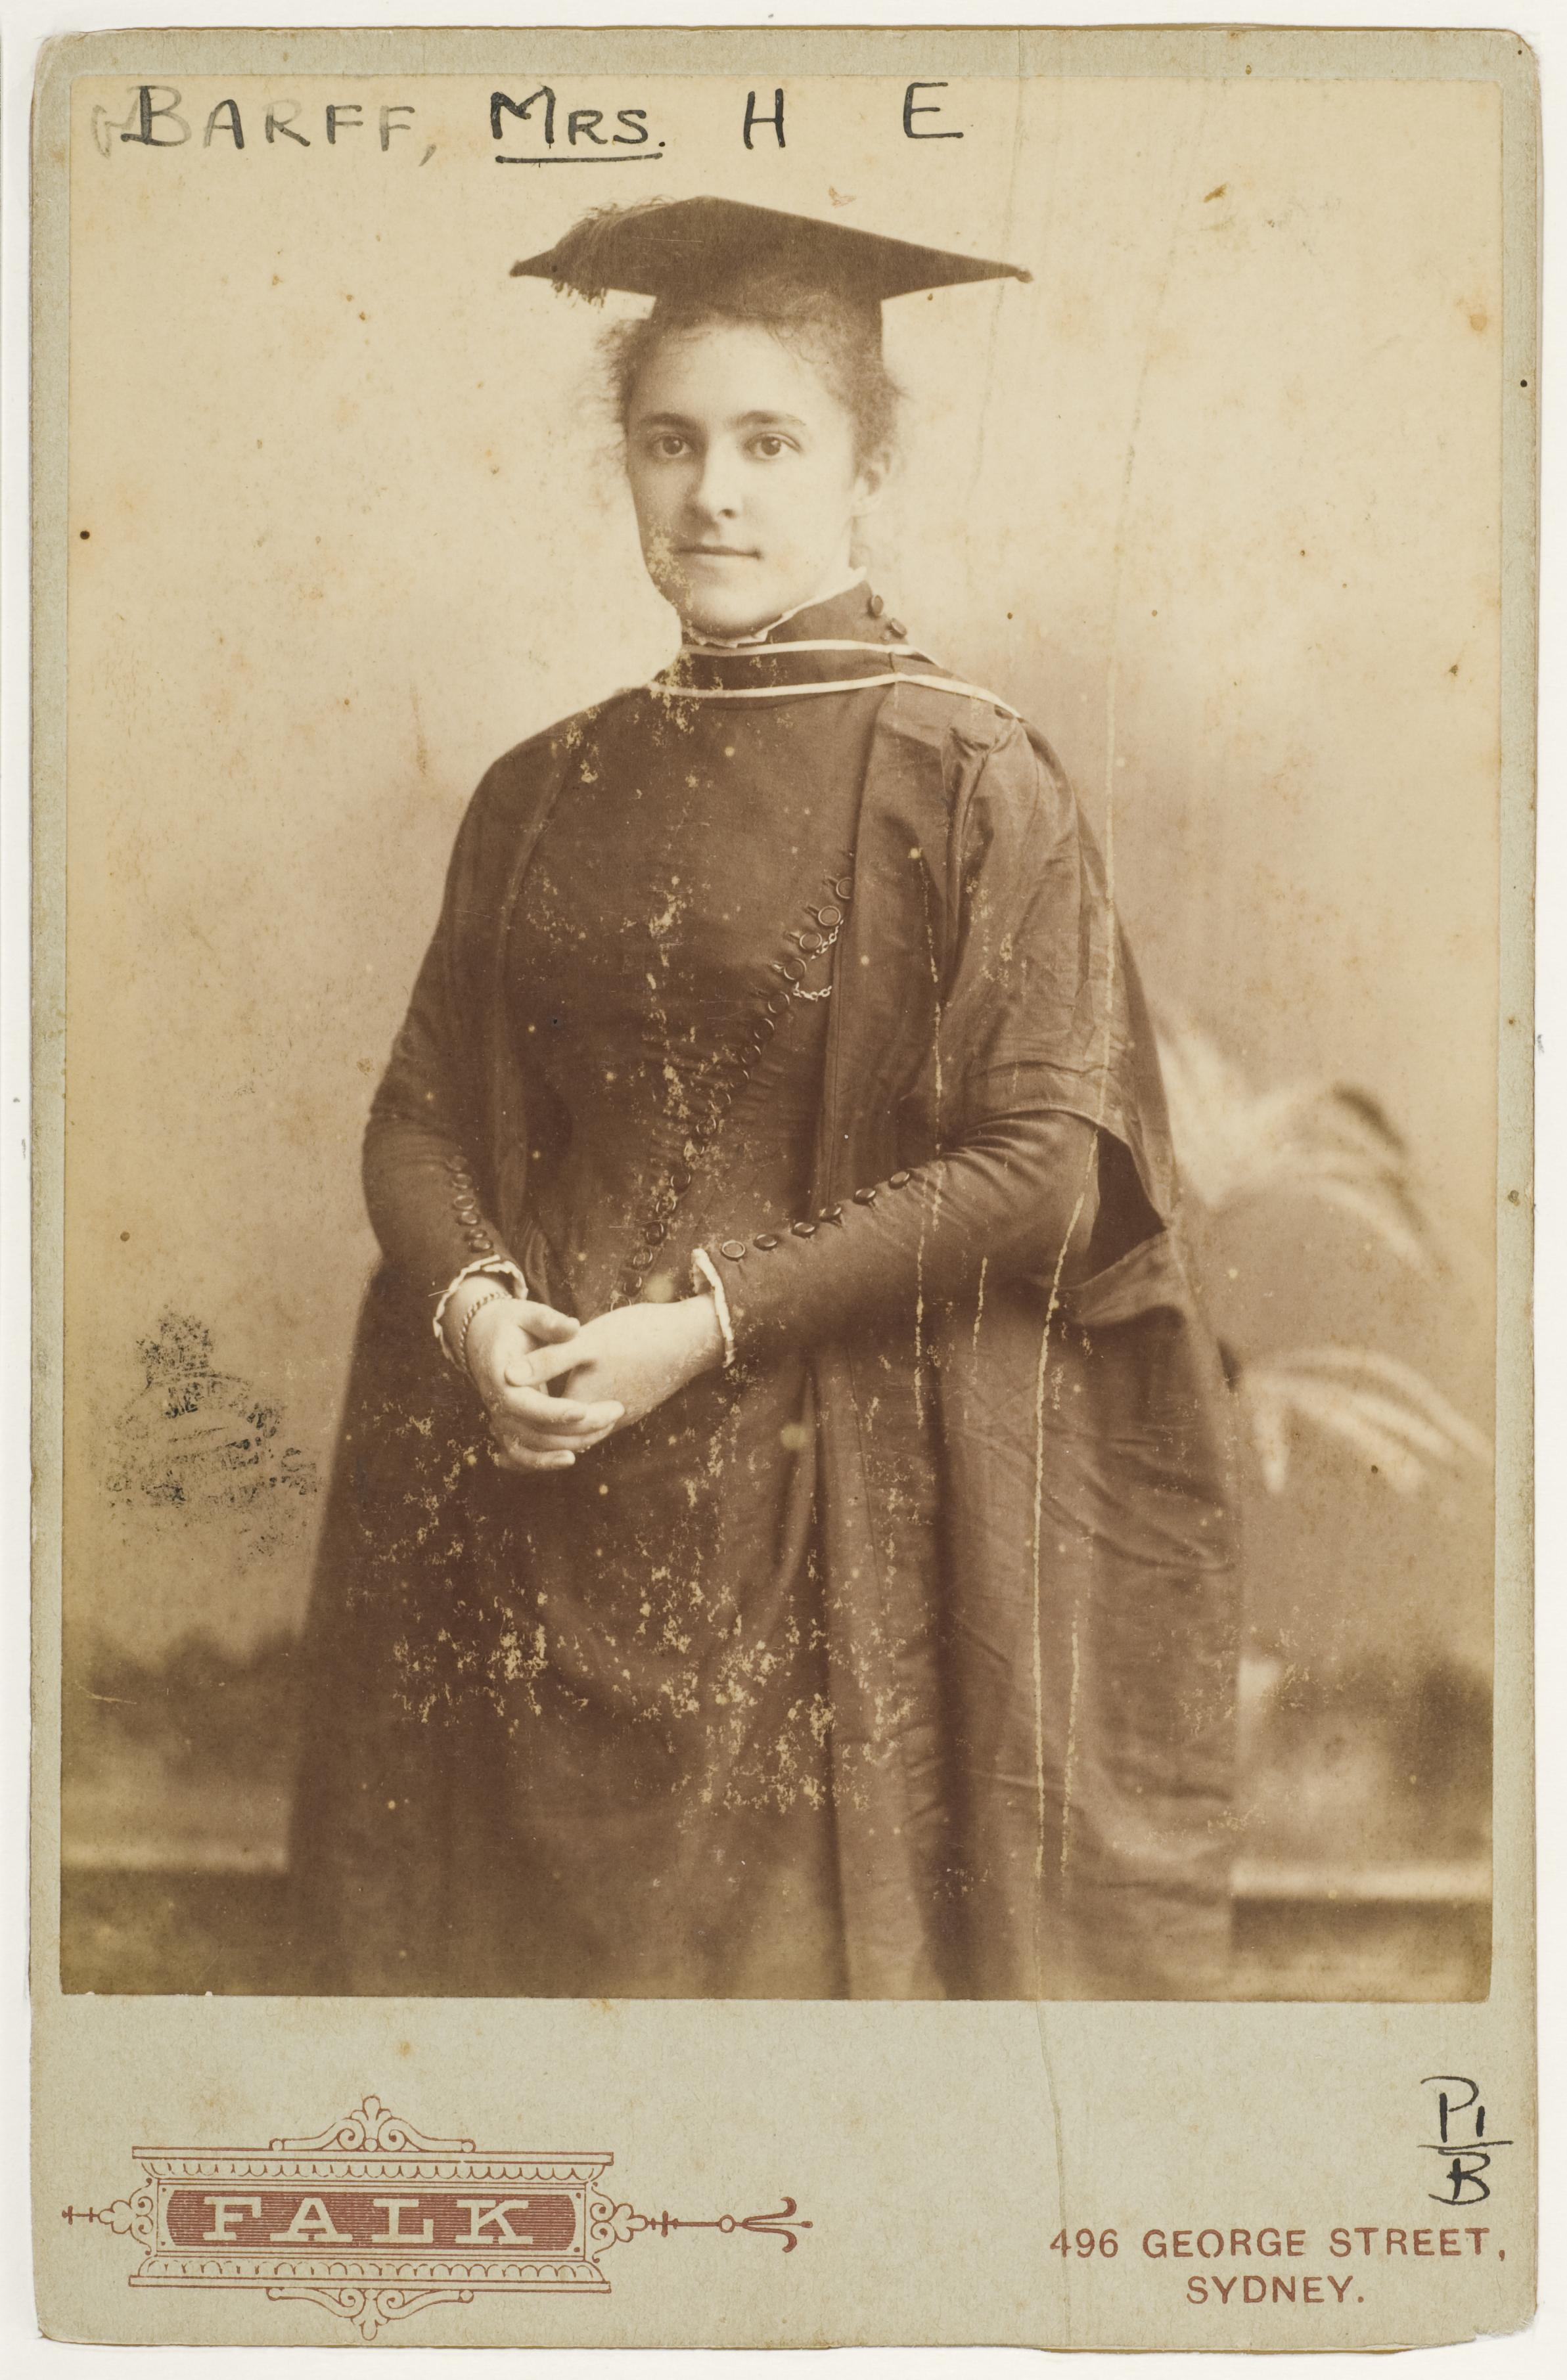 Jane Foss Barff (nee Russell), educationist, 29 November 1890 / photograph by Falk